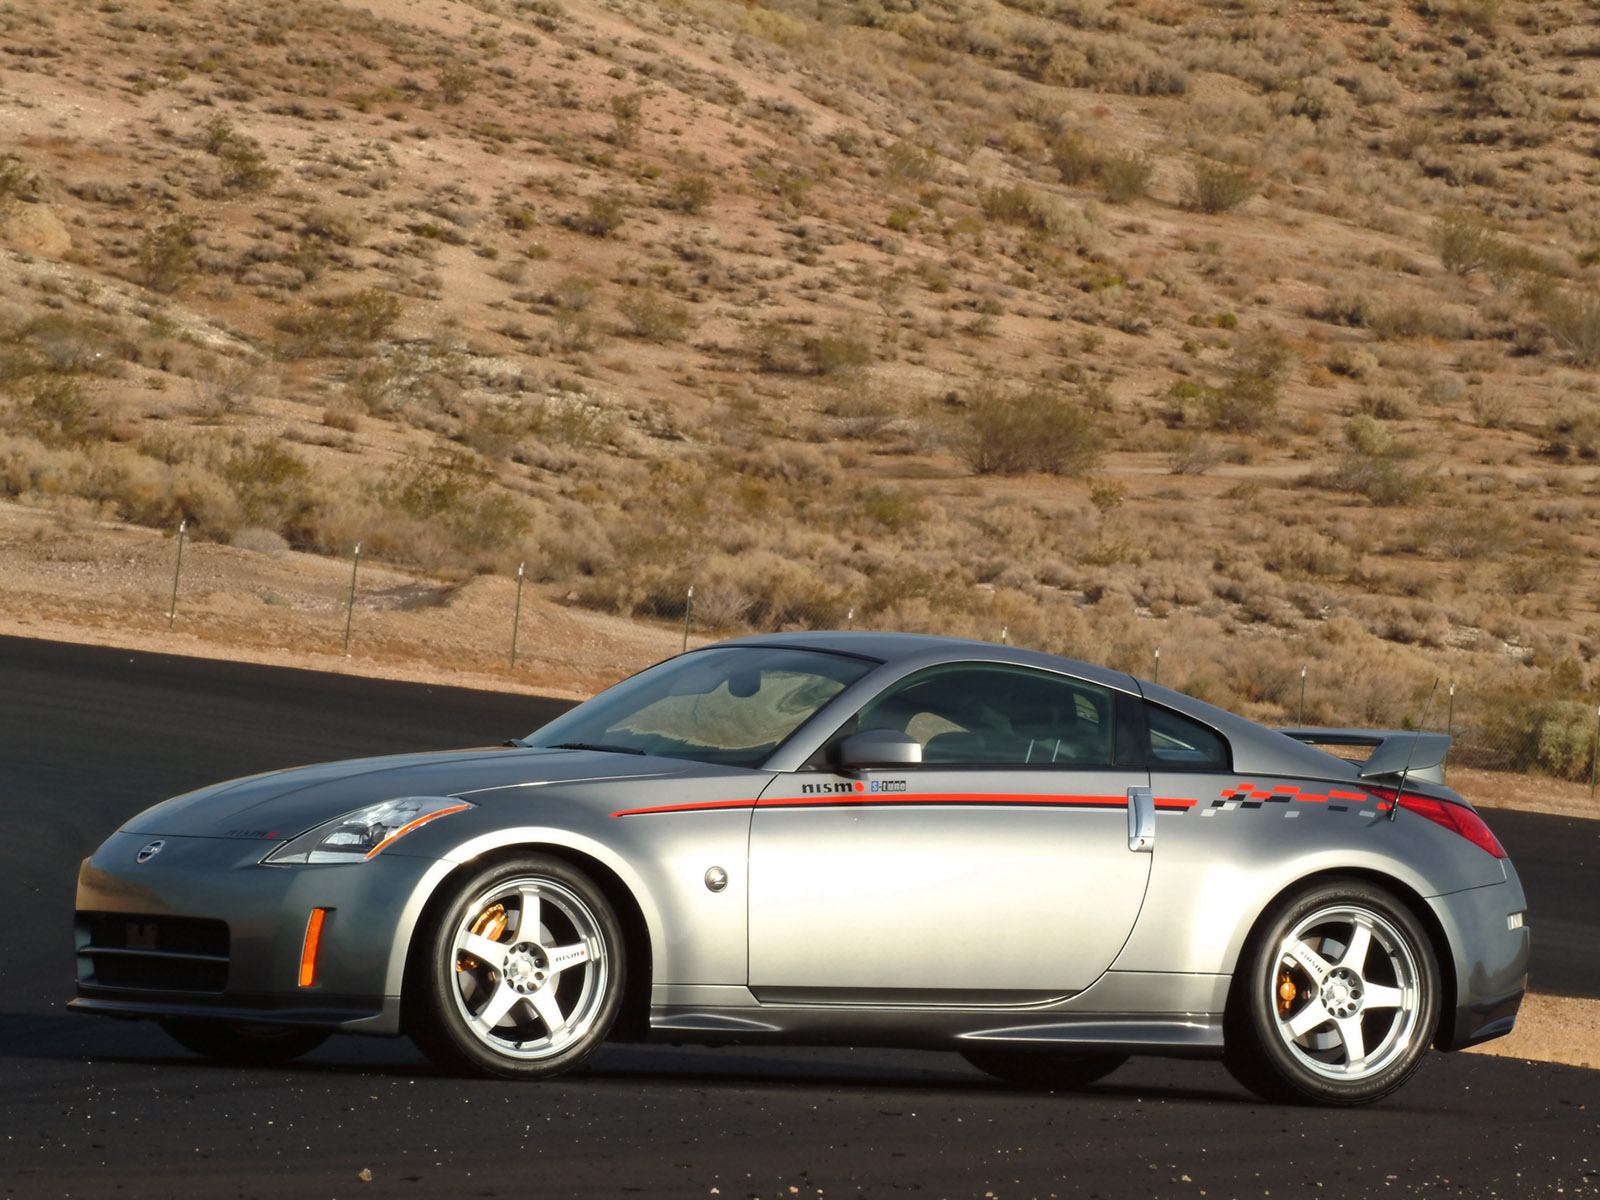 nissan nismo 350z photos photogallery with 16 pics. Black Bedroom Furniture Sets. Home Design Ideas